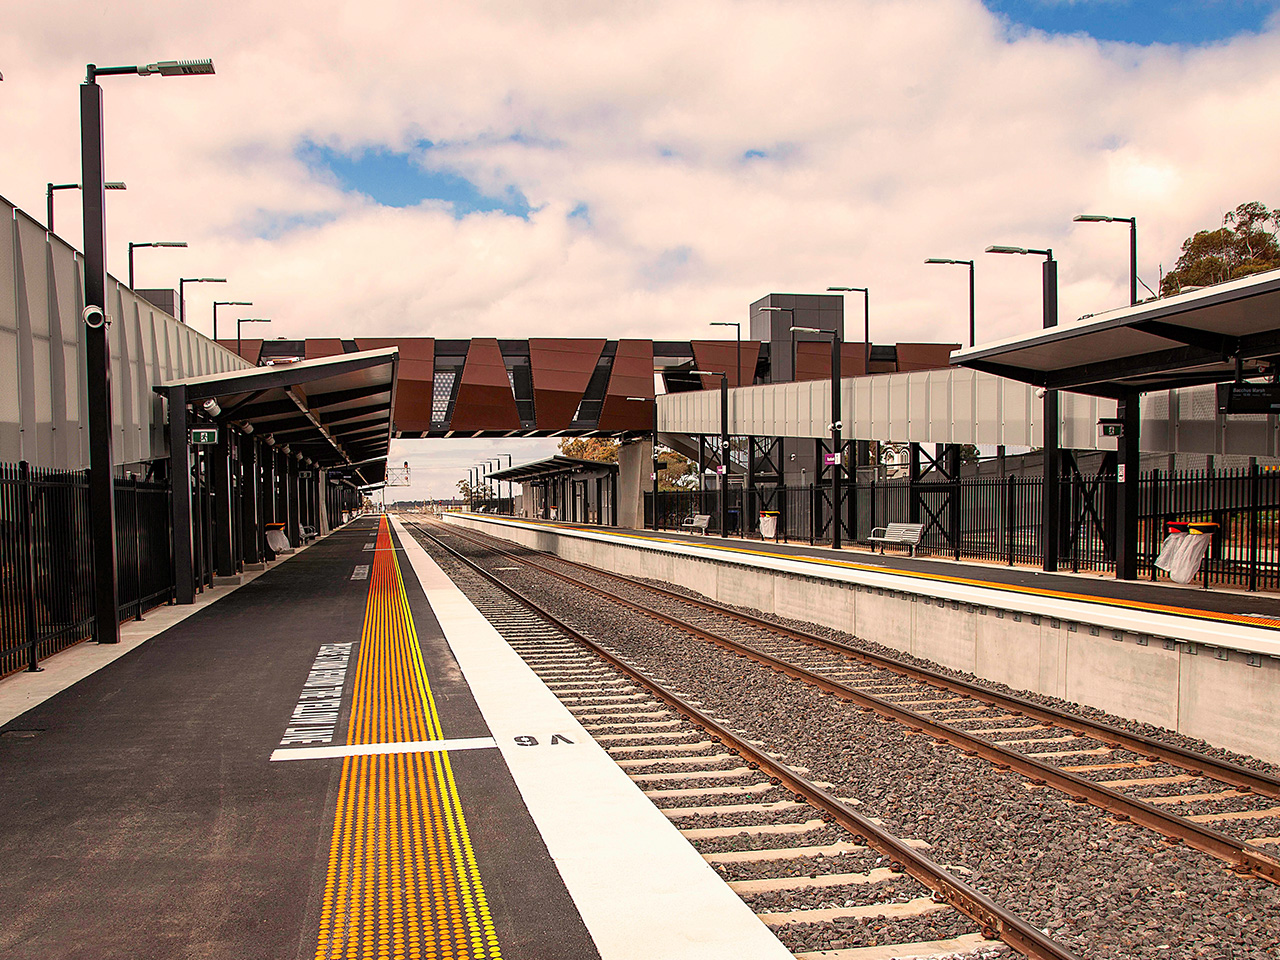 The new Rockbank Station in use